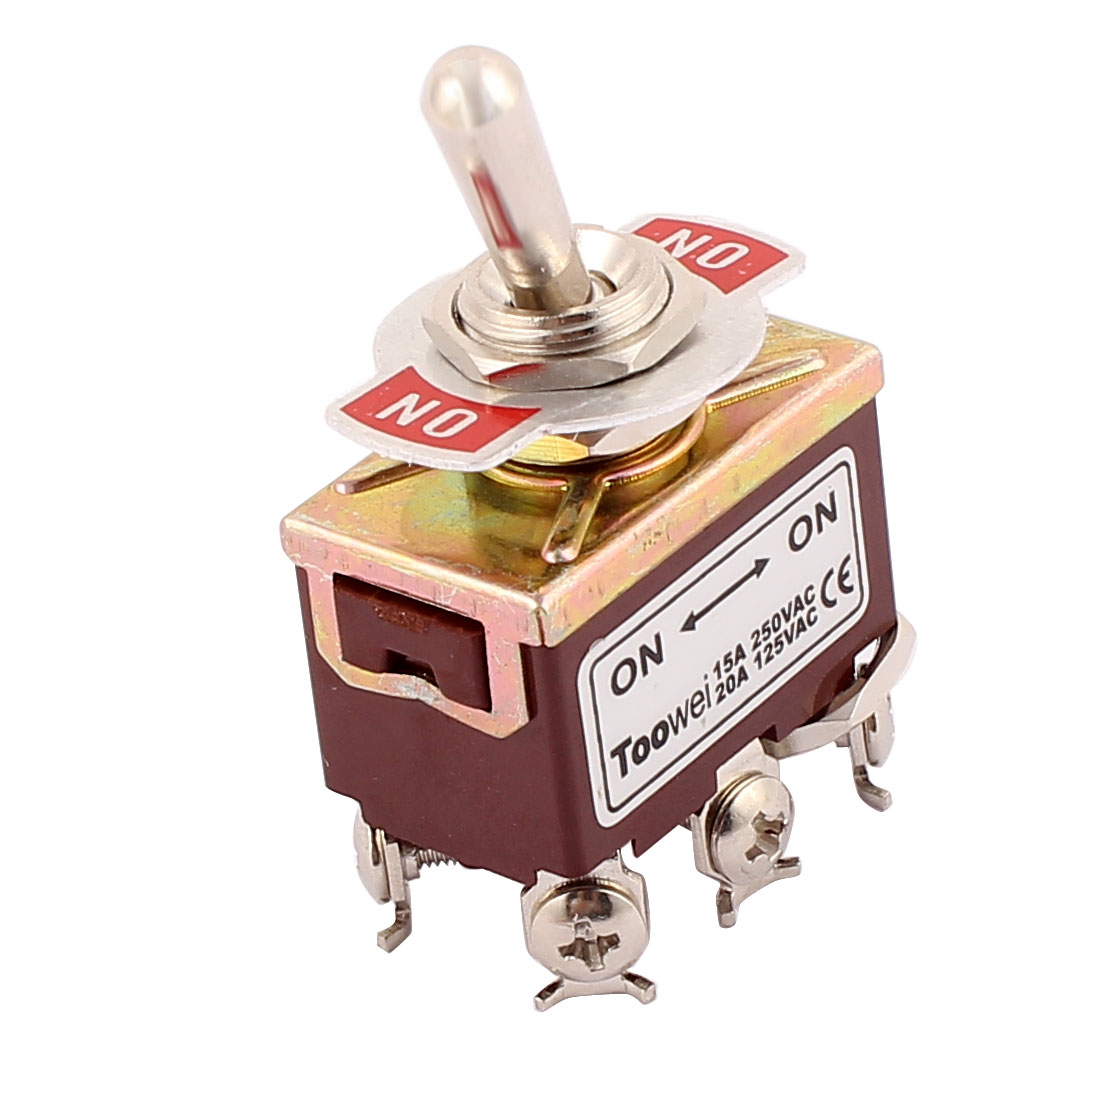 AC 250V/15A 125V/20A 6 Terminals DPDT 2-Position ON/ON Latching Toggle Switch